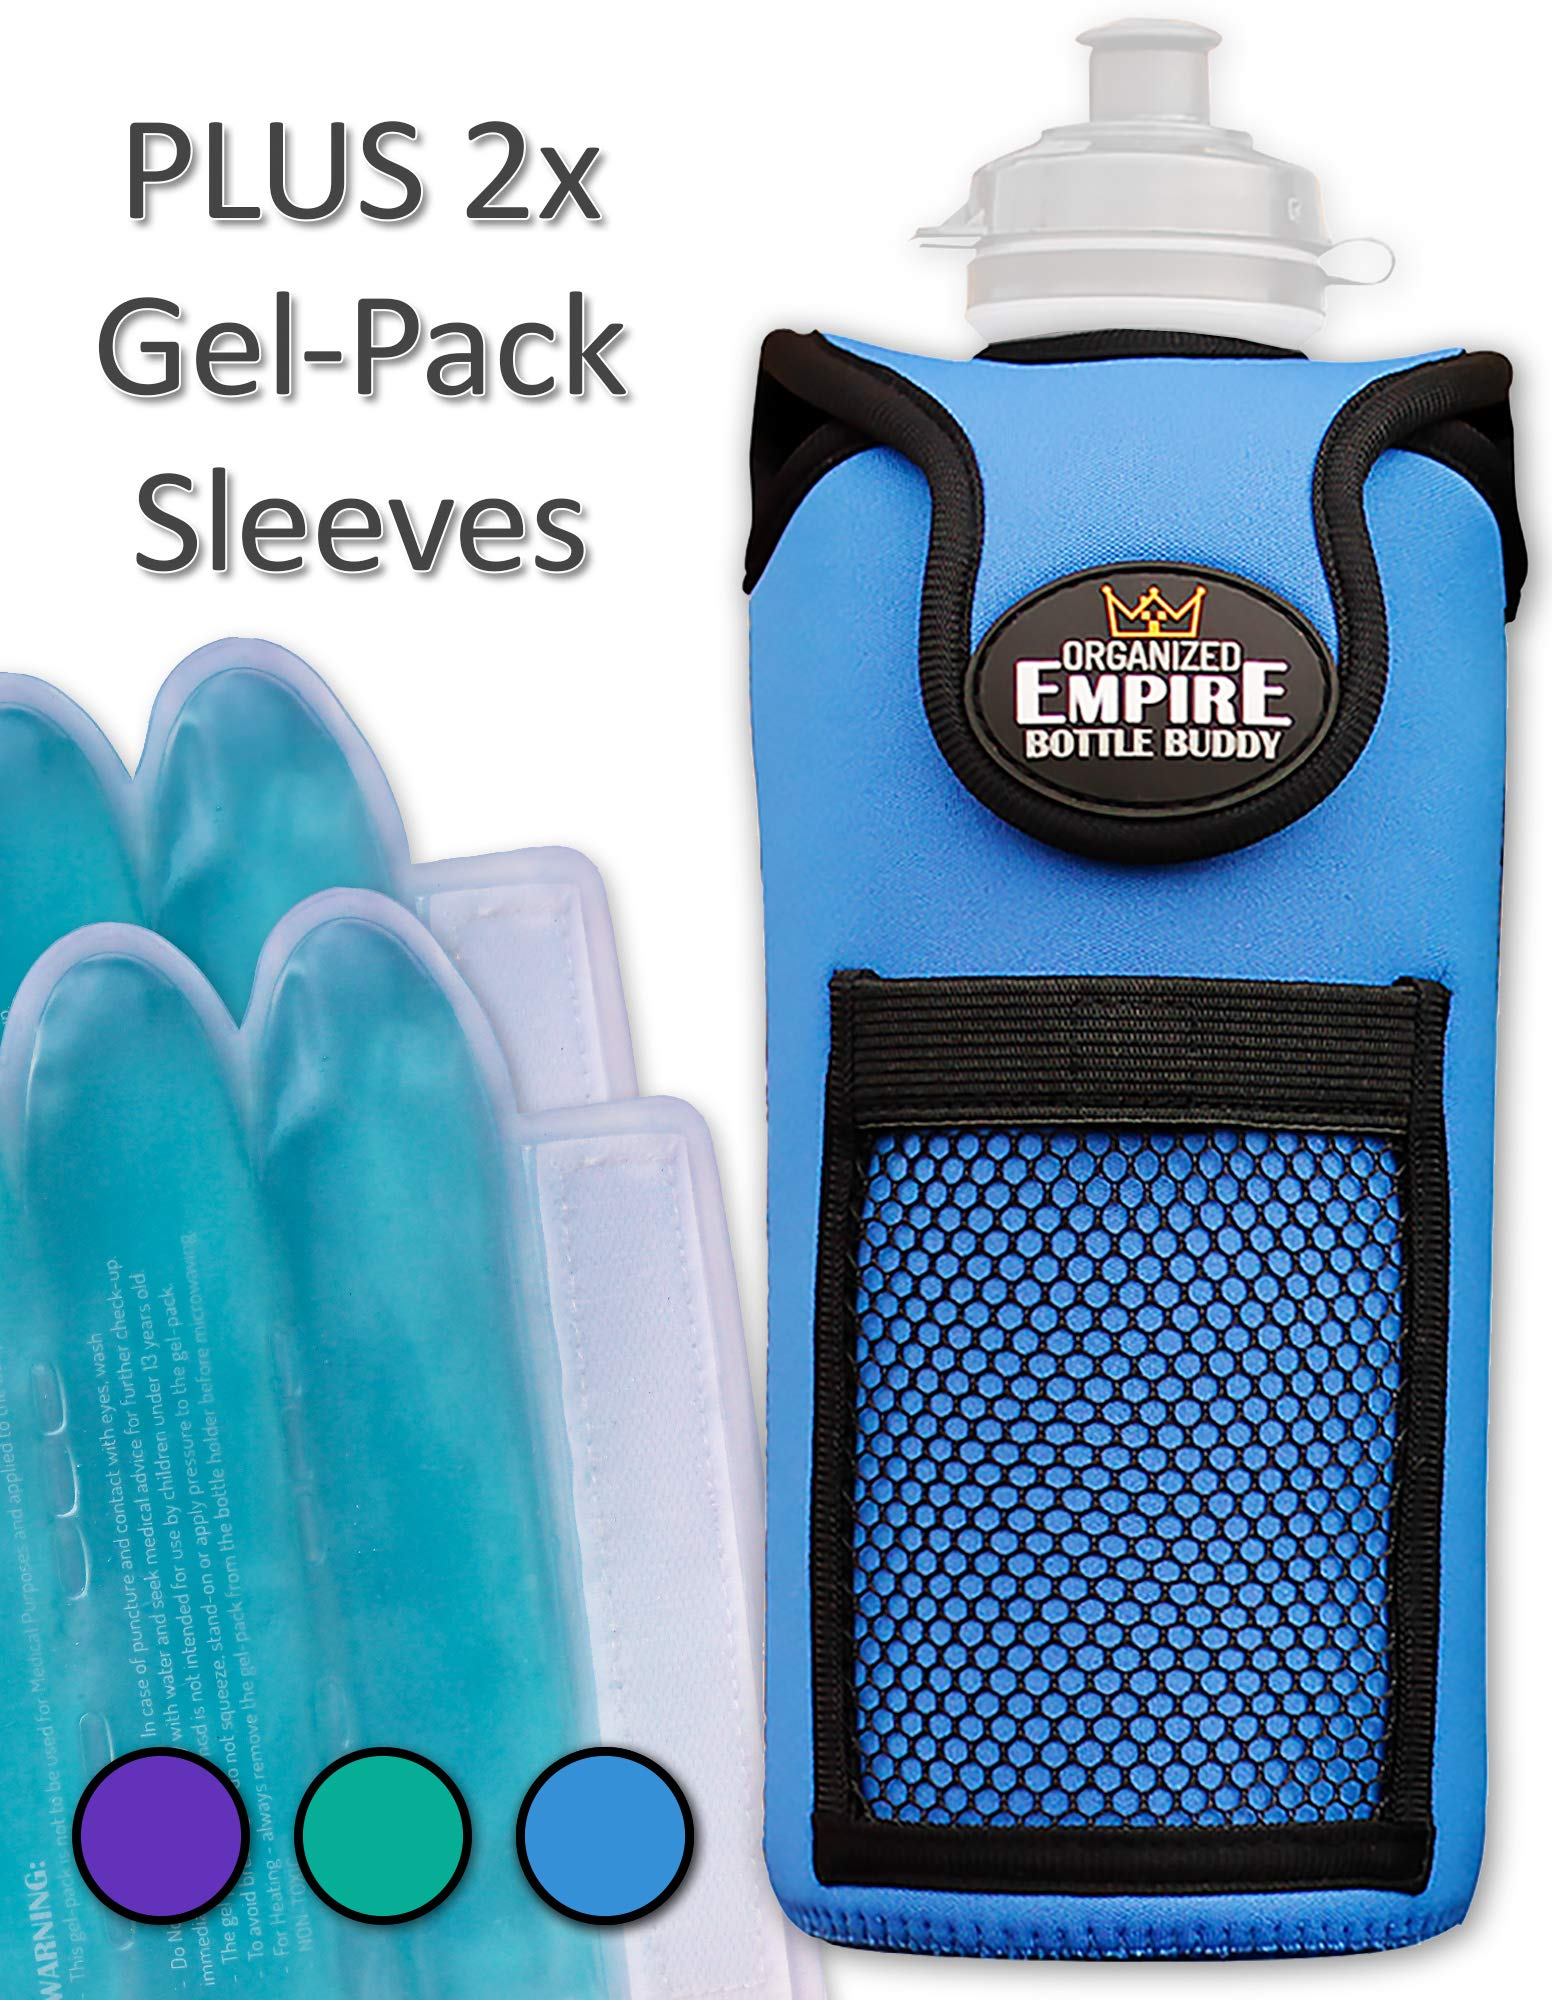 Organized Empire Insulated Water Bottle Holder with Shoulder Strap Sling + 2 Freezable & Microwave Gel-Pack Sleeves for hot/Cold Use as Breastmilk Cooler Bag, Portable Bottle Warmer or Drink Carrier by Organized Empire